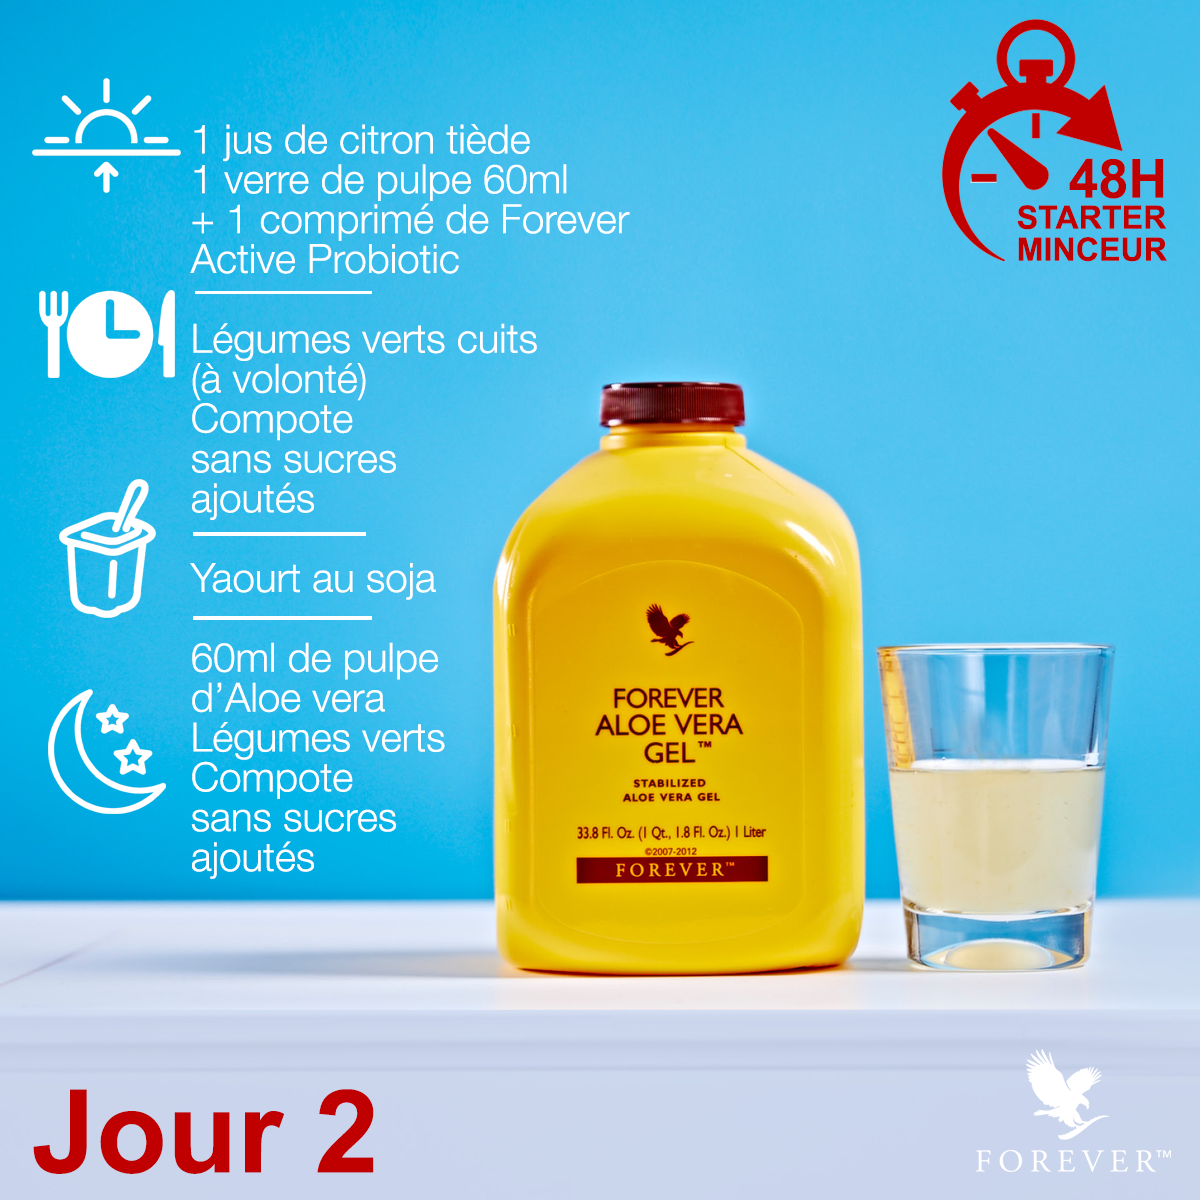 Pin By Julio León On Forever Starter Minceur Forever Aloe Forever Products Forever Living Products